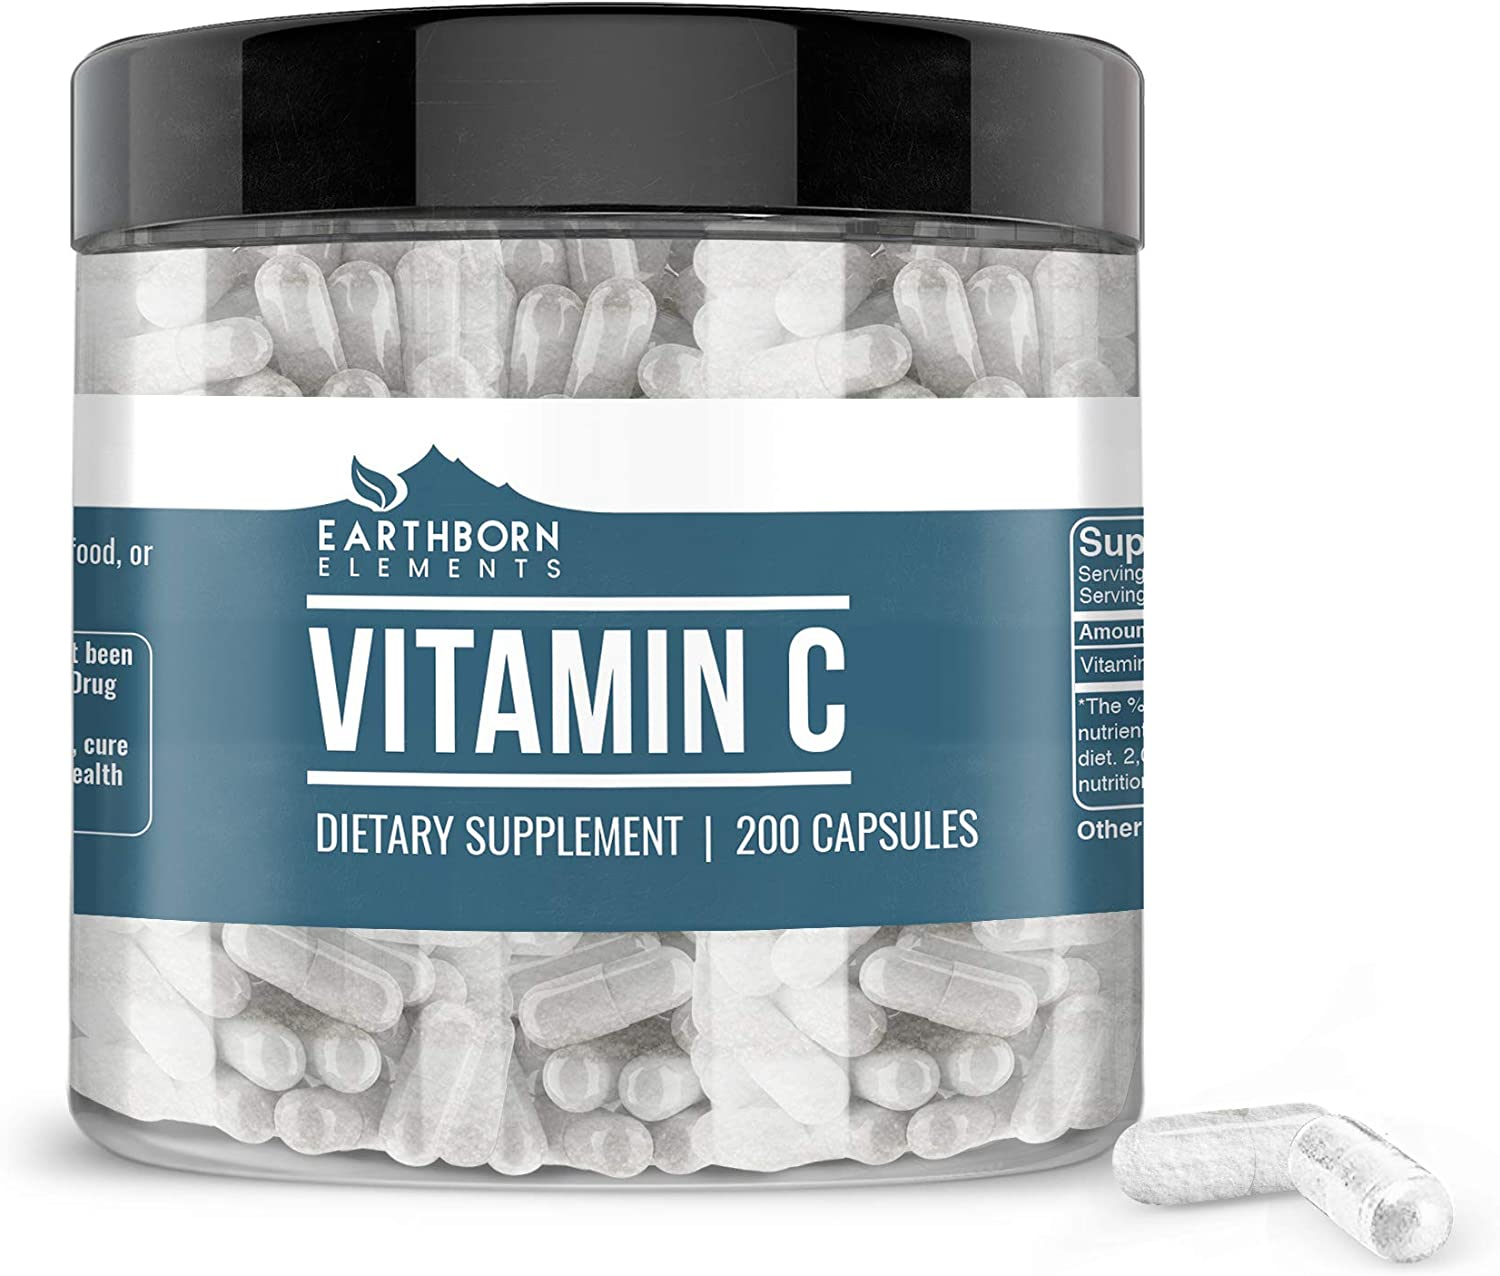 Vitamin C Capsules (200 Capsules, 680 mg) by Earthborn Elements, L-Ascorbic Acid, Antioxidant, Immune System Booster